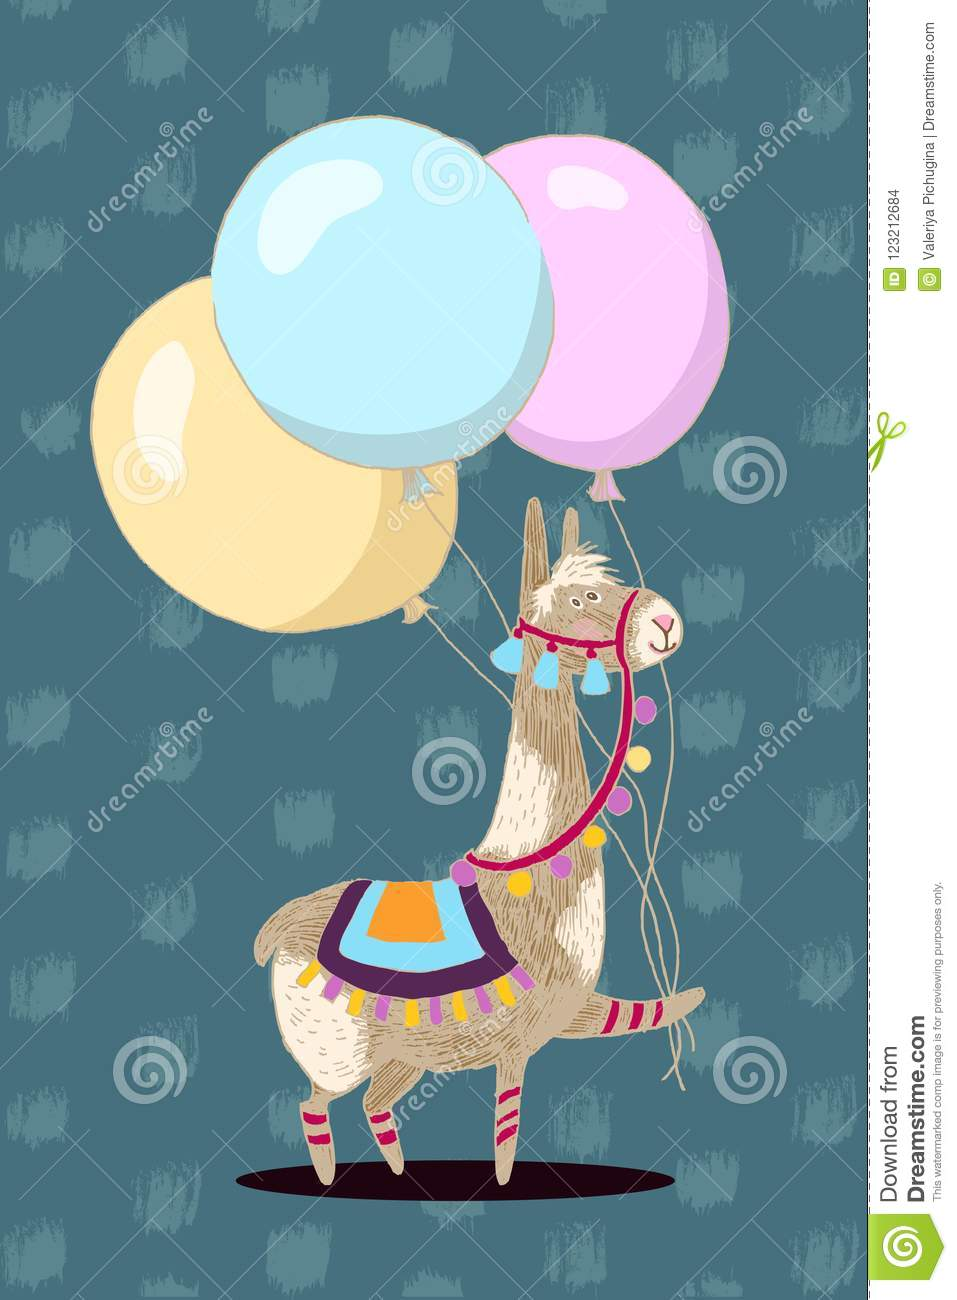 Greeting Card Vector Design Cheerful Lama With Three Balloons Happy Birthday Invitation Template